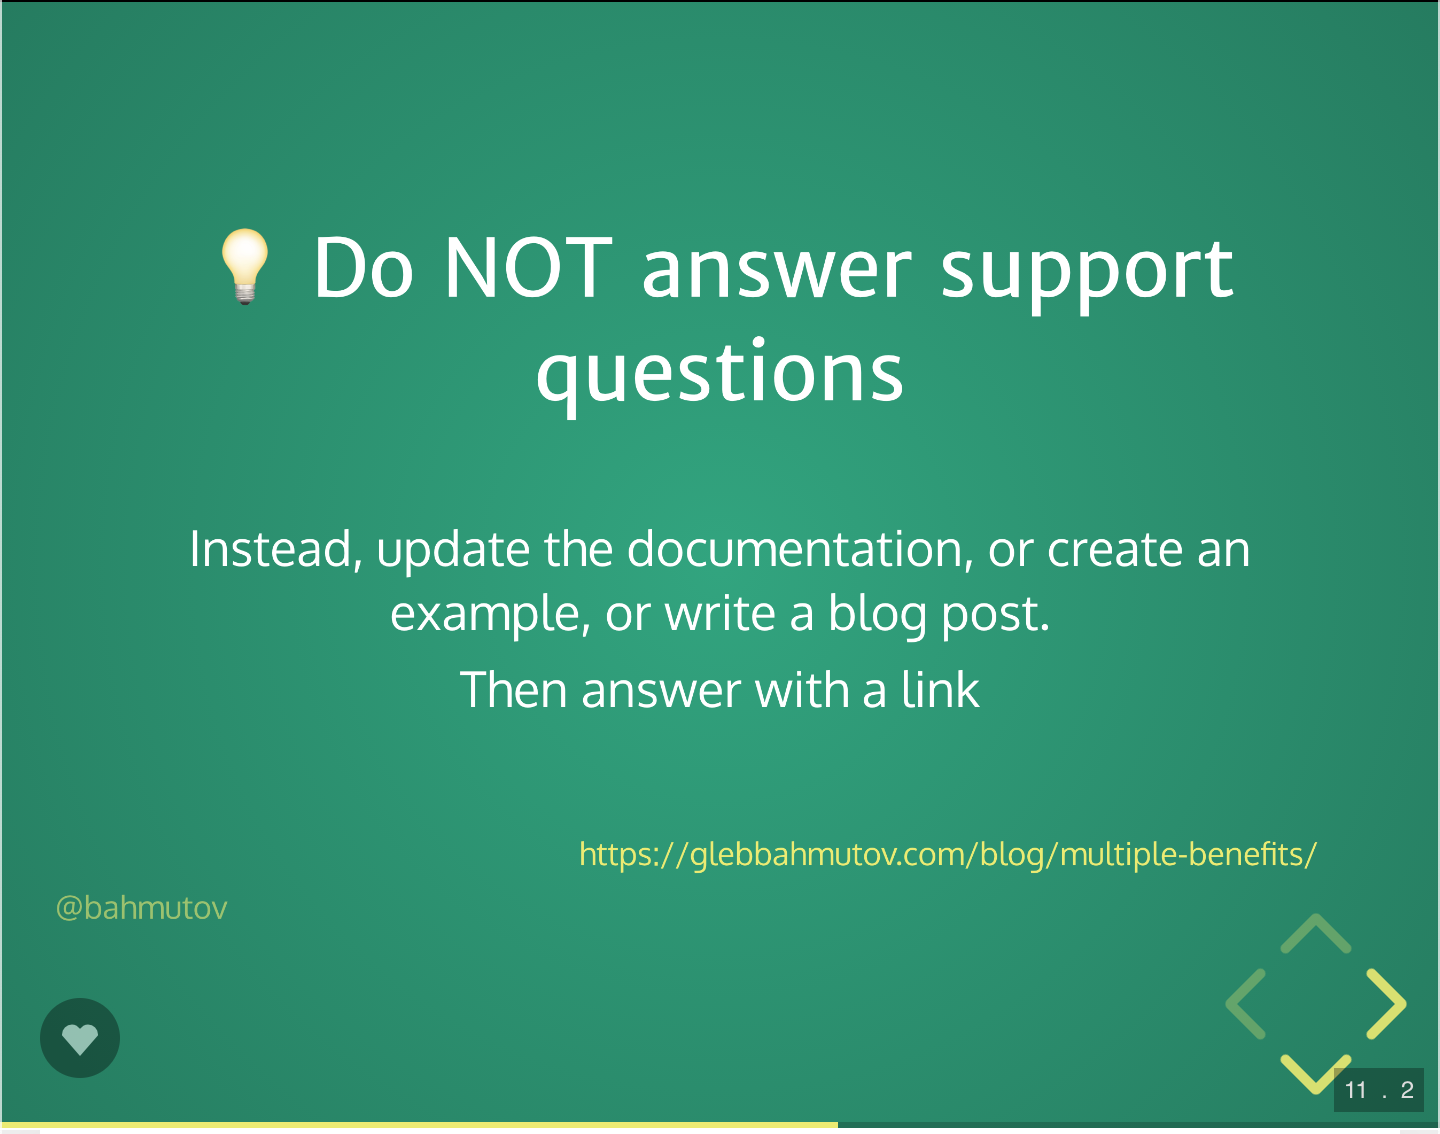 Answer the user question with the link